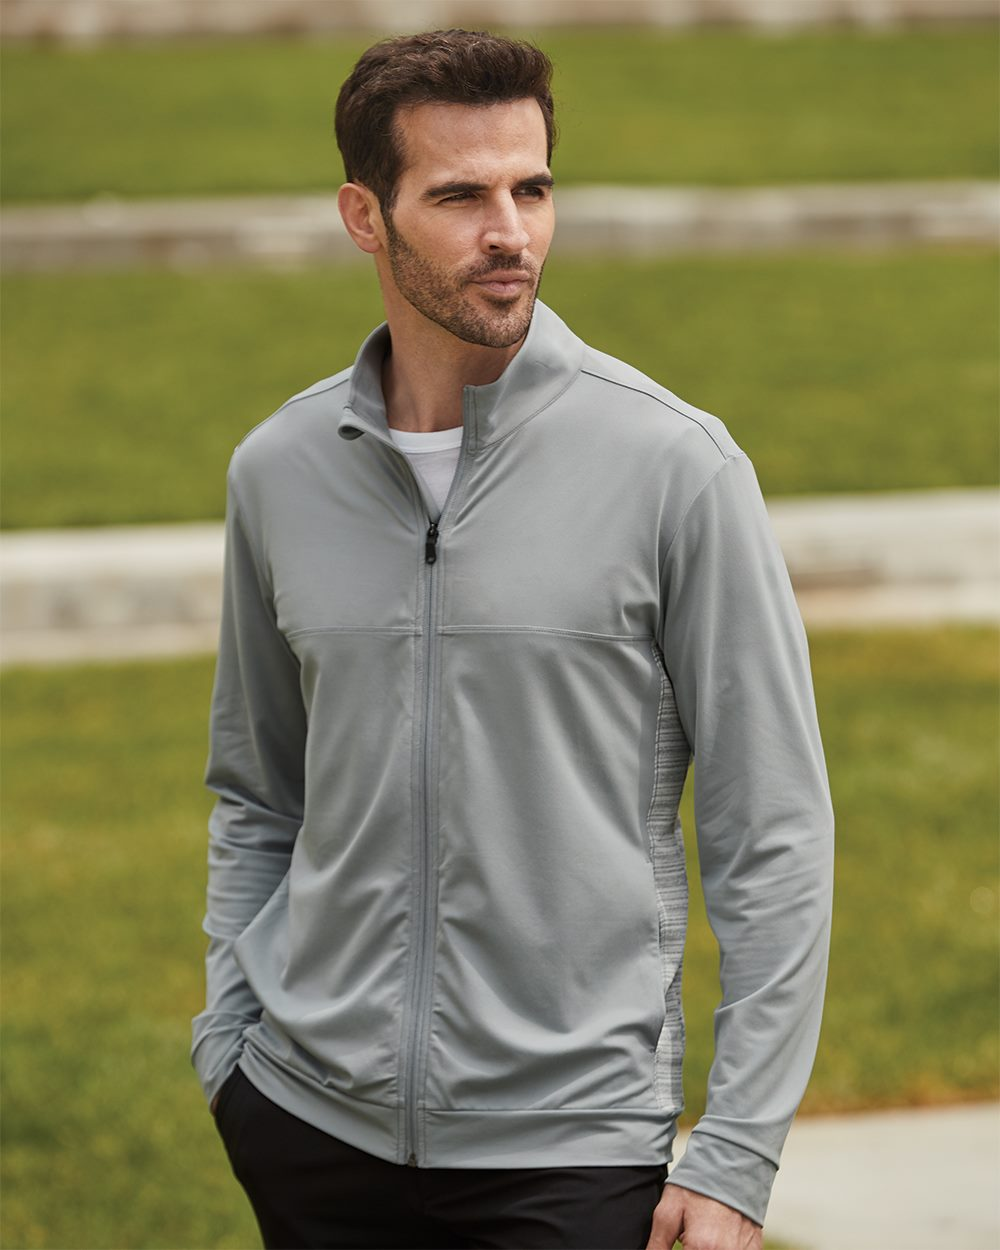 Adidas A203 - Rangewear Full Zip Jacket